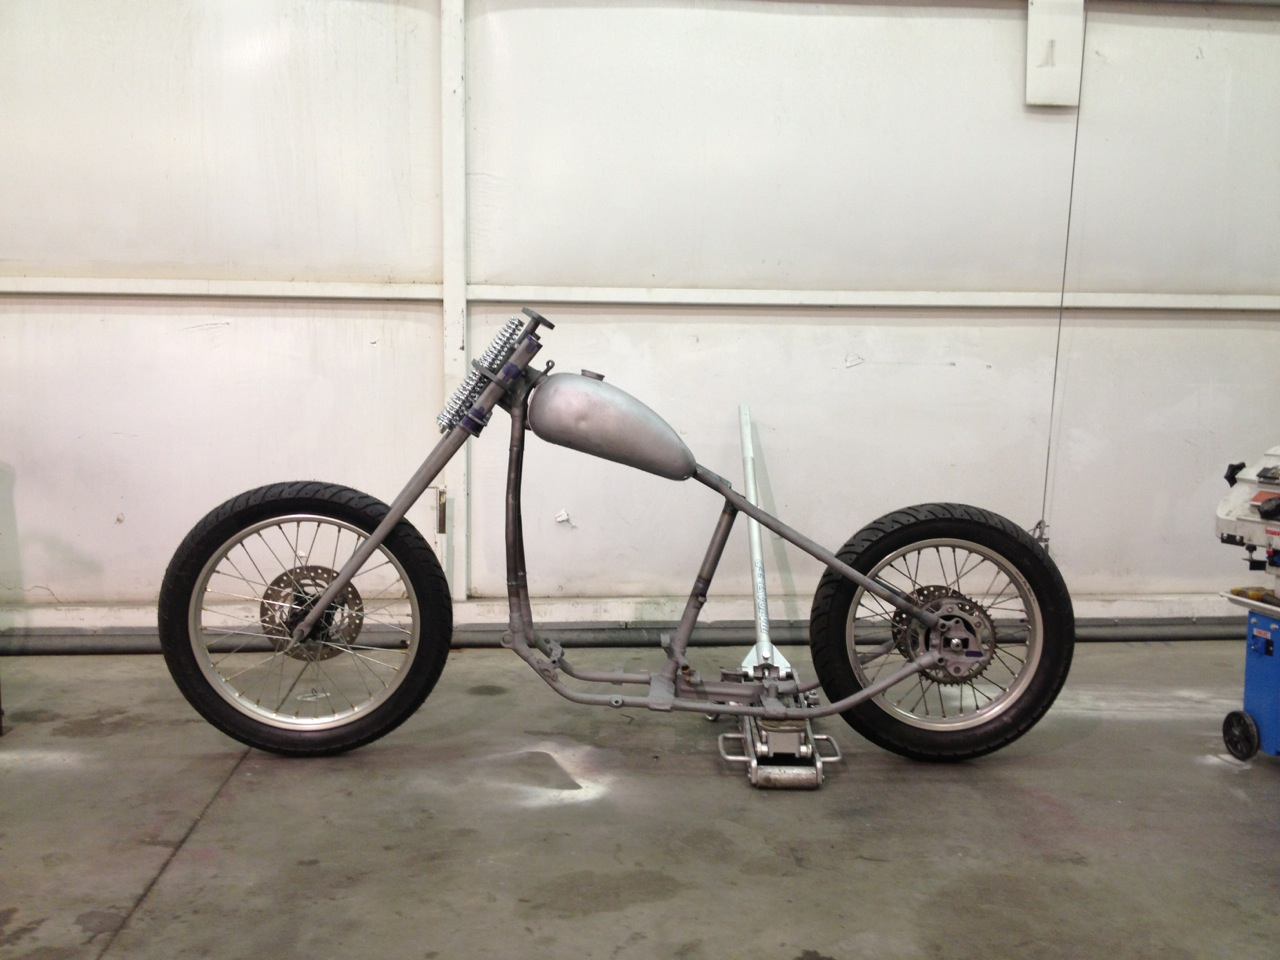 Andy Carter BF5 Builder Update | Born Free Motorcycle Show